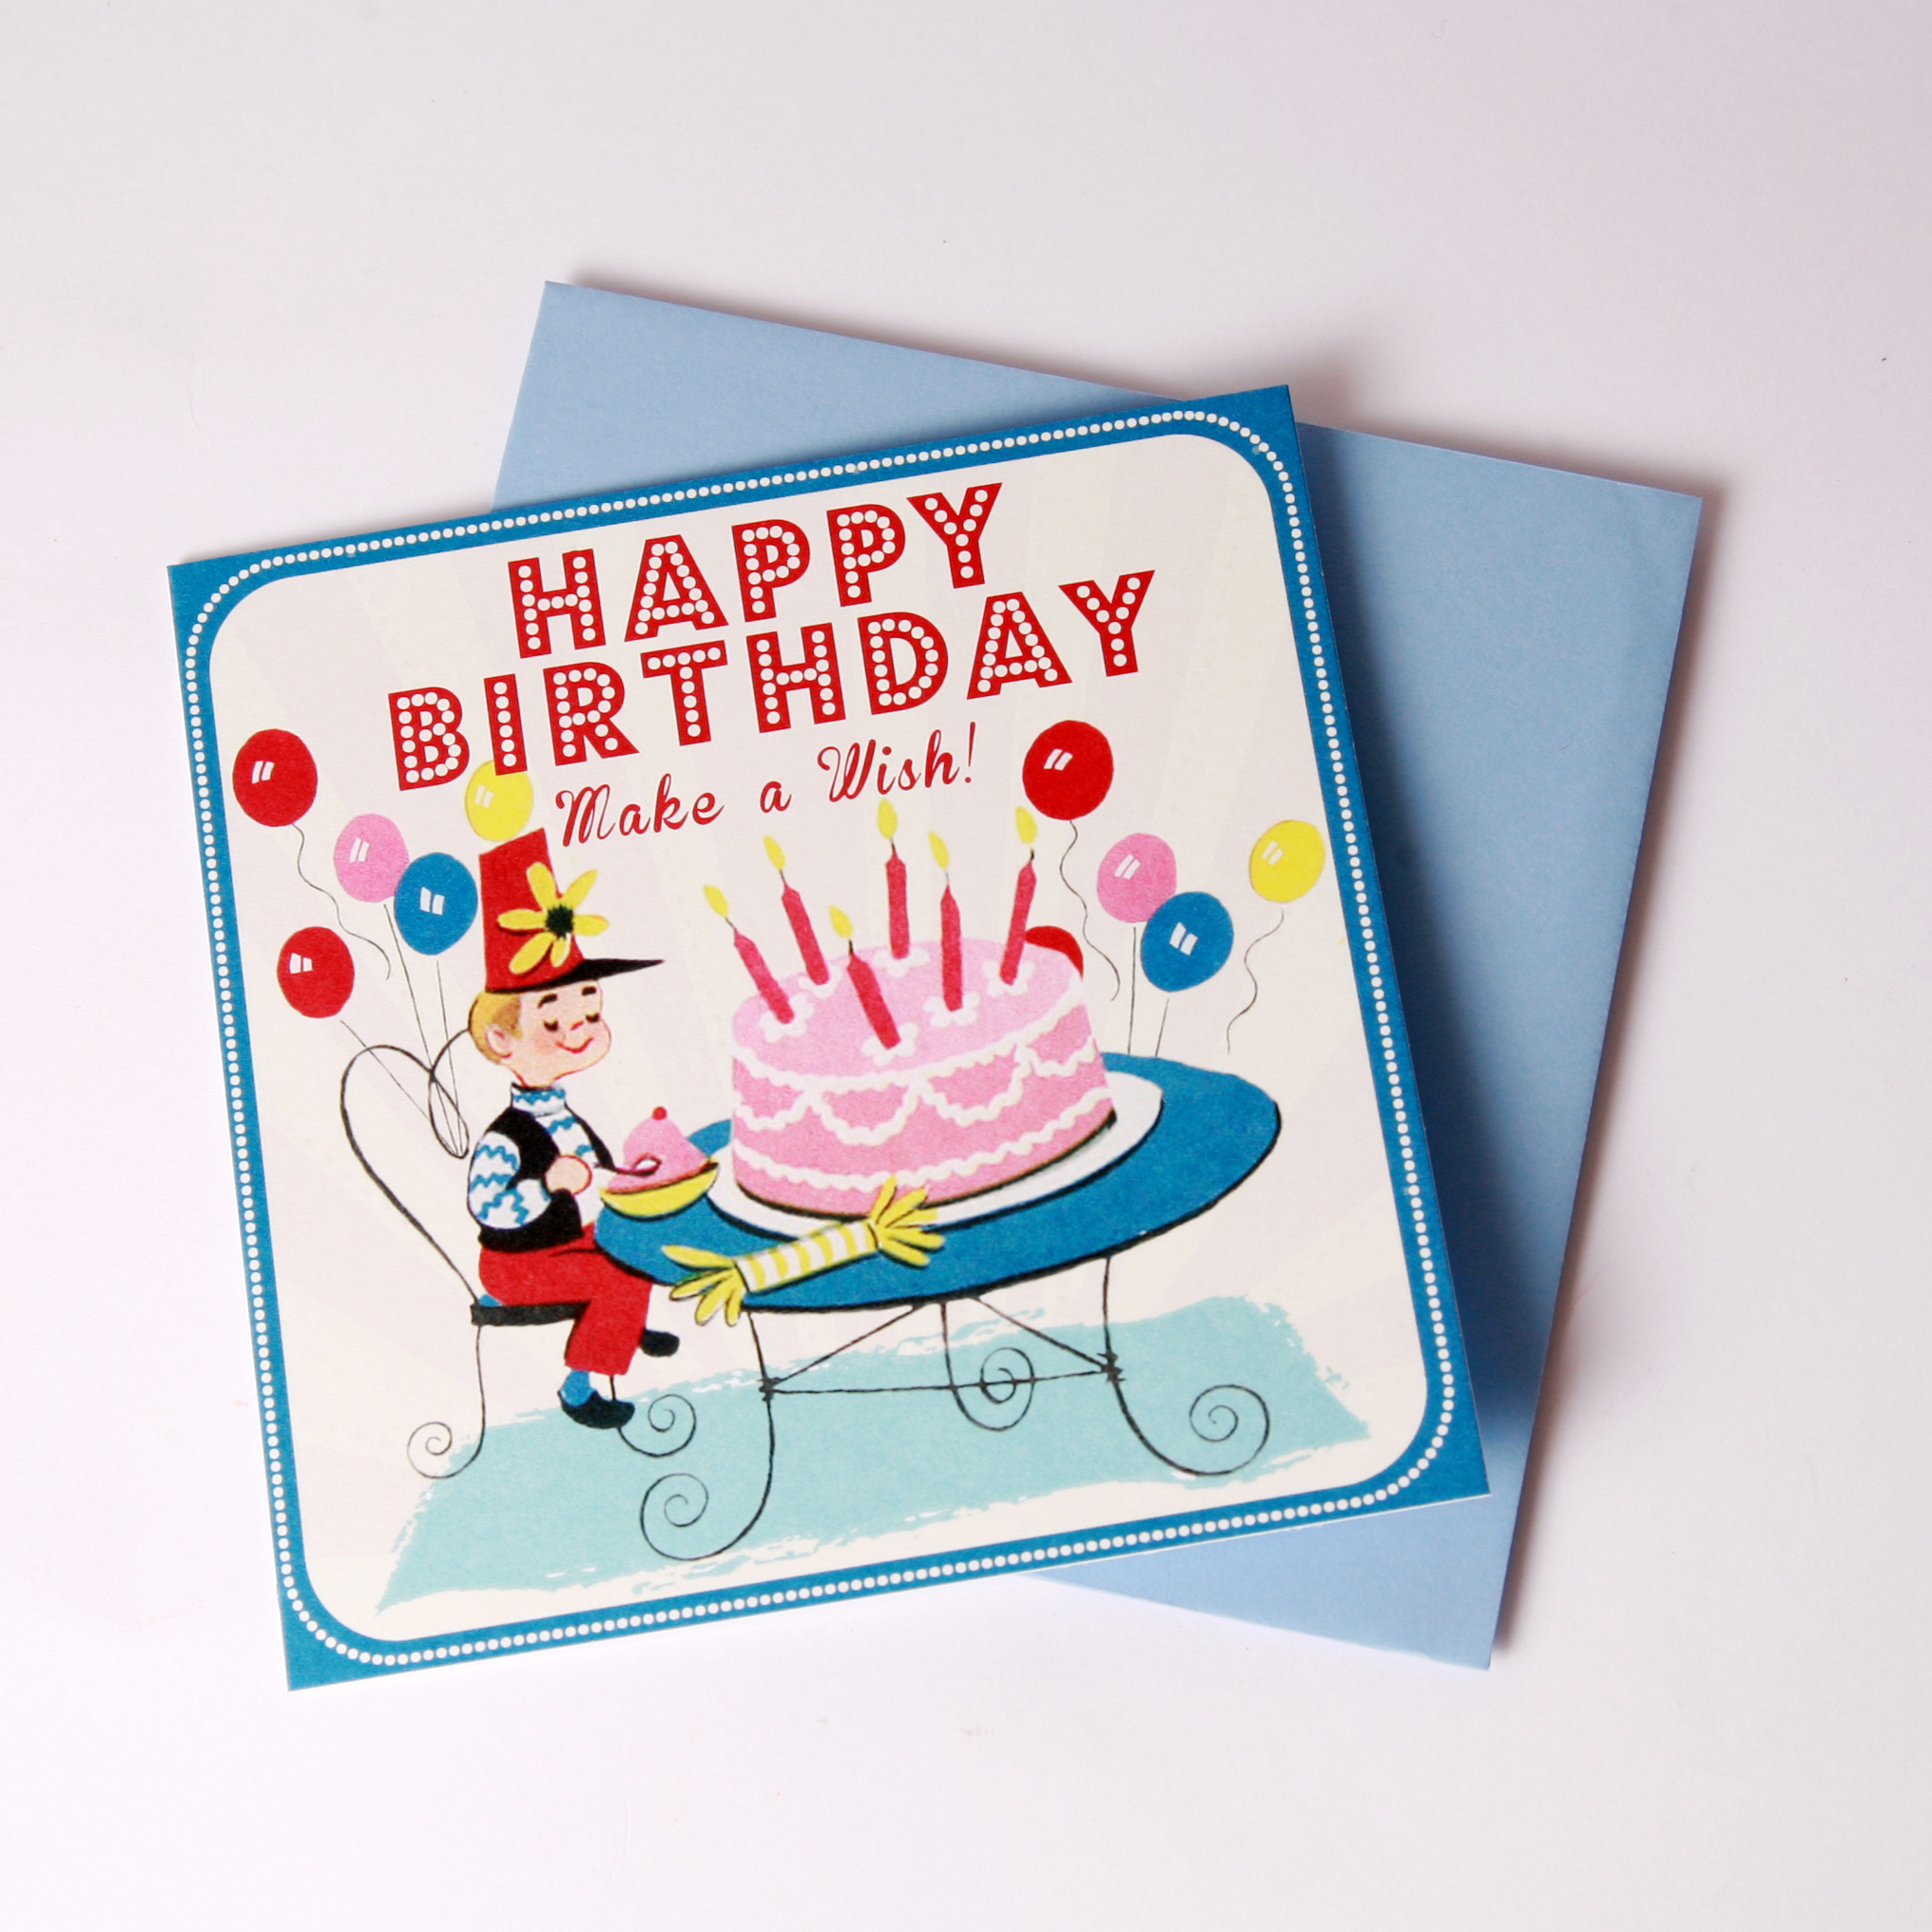 Boys 'make a wish' card